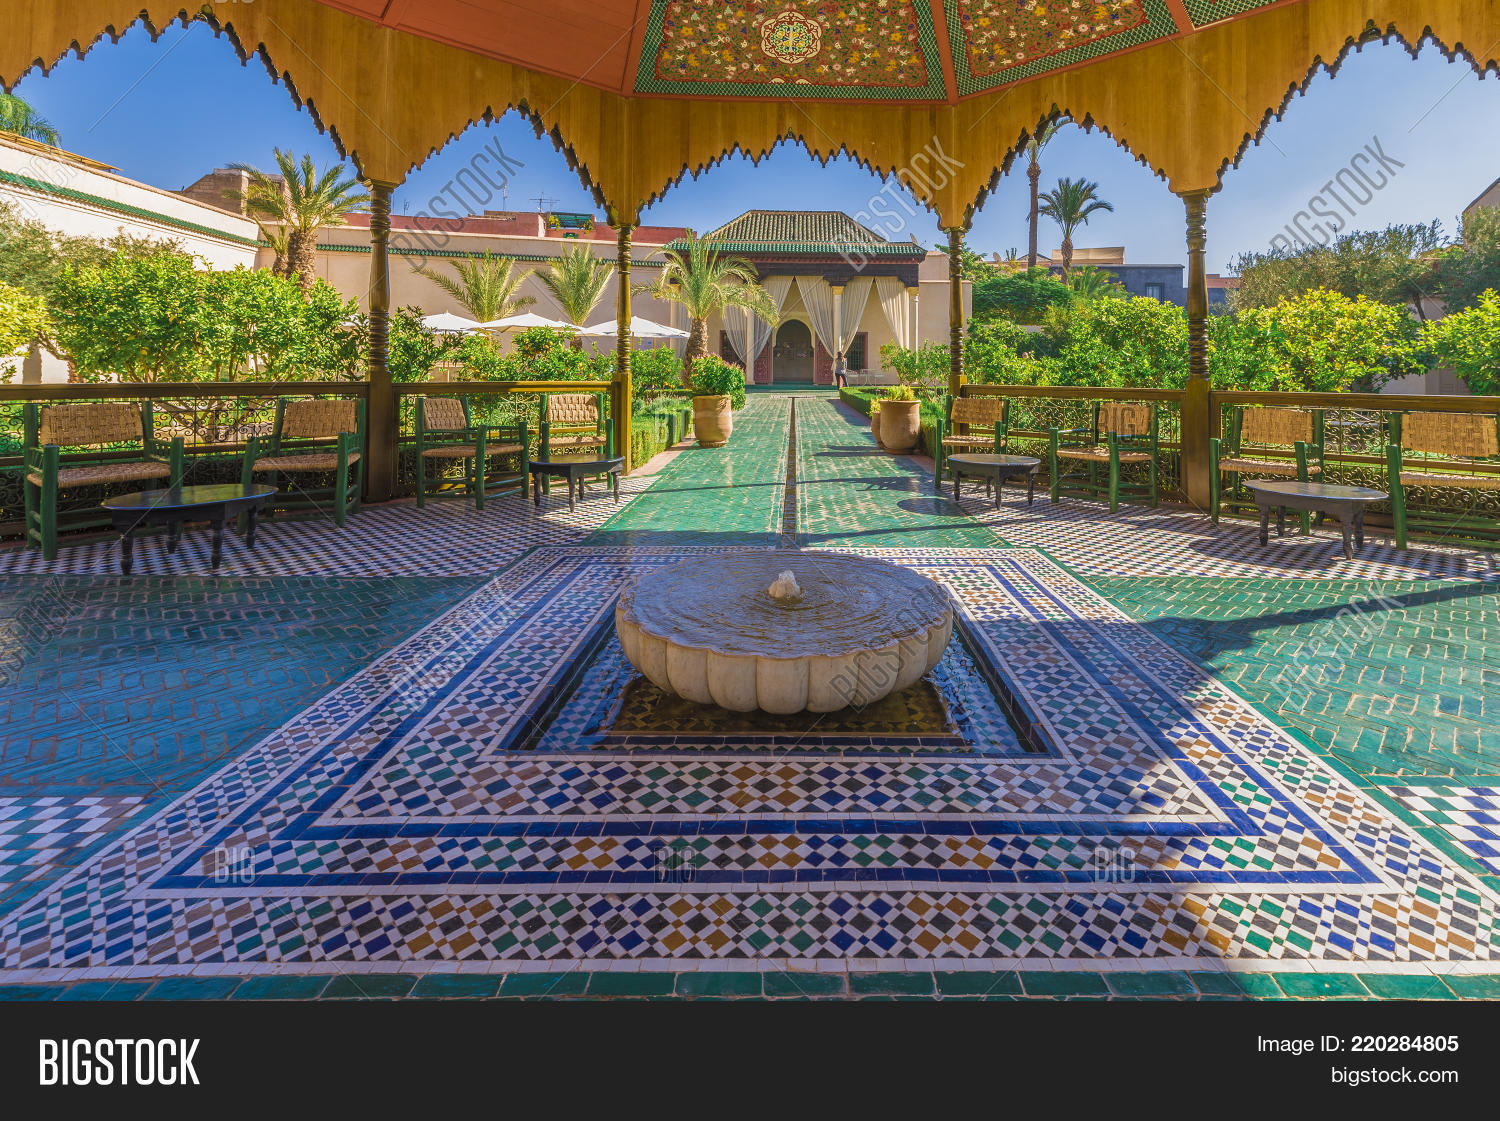 Le jardin secret marrakech image photo bigstock for Restaurant le jardin marrakech medina